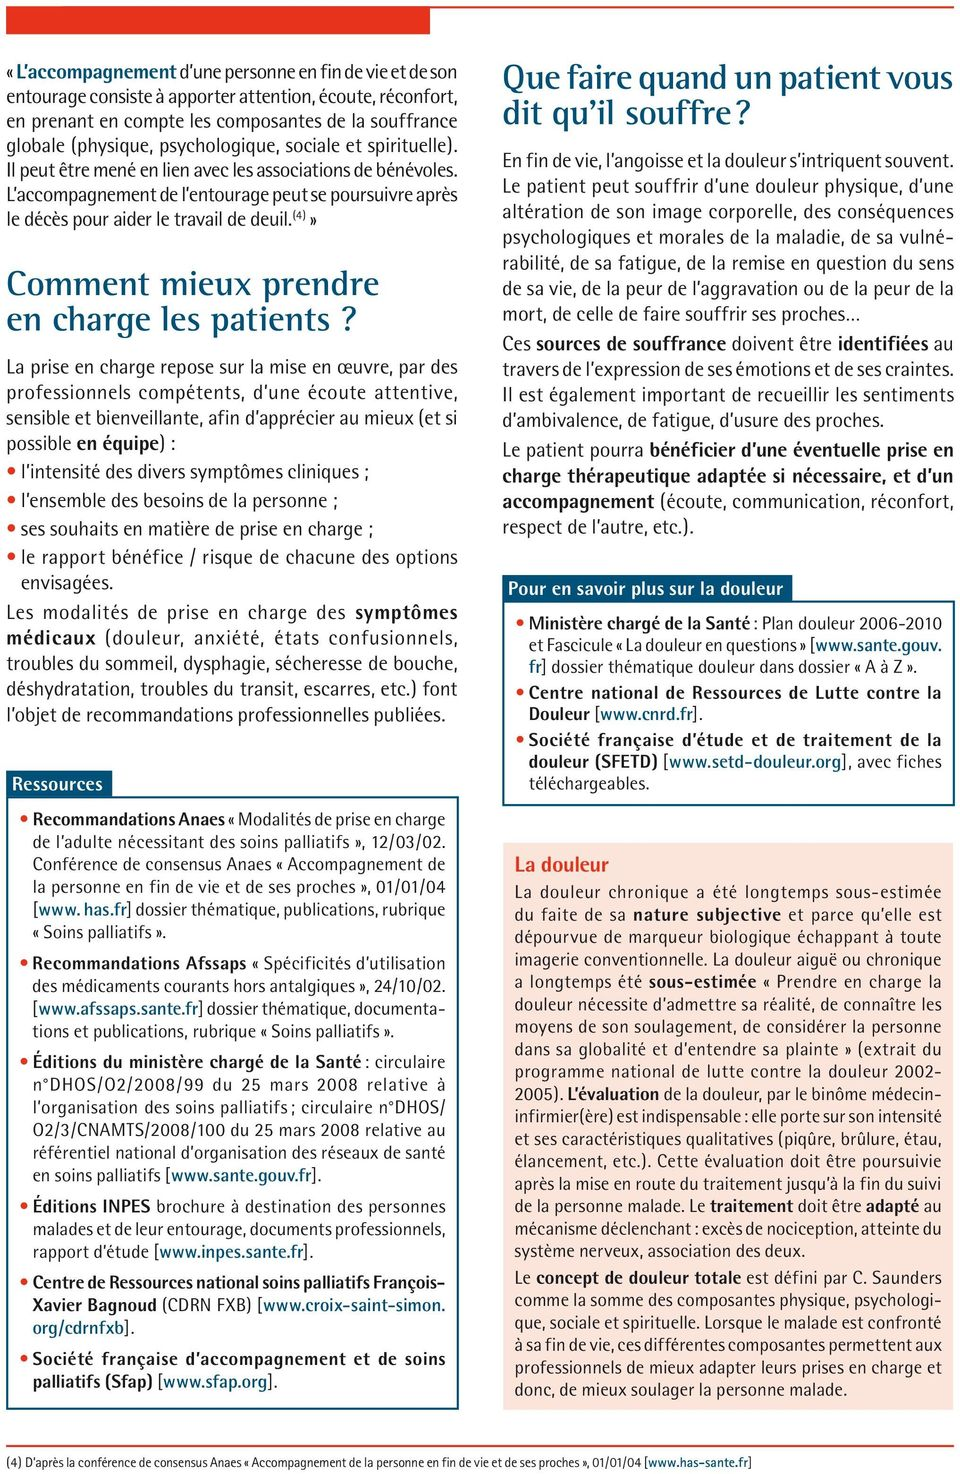 (4)» Comment mieux prendre en charge les patients?